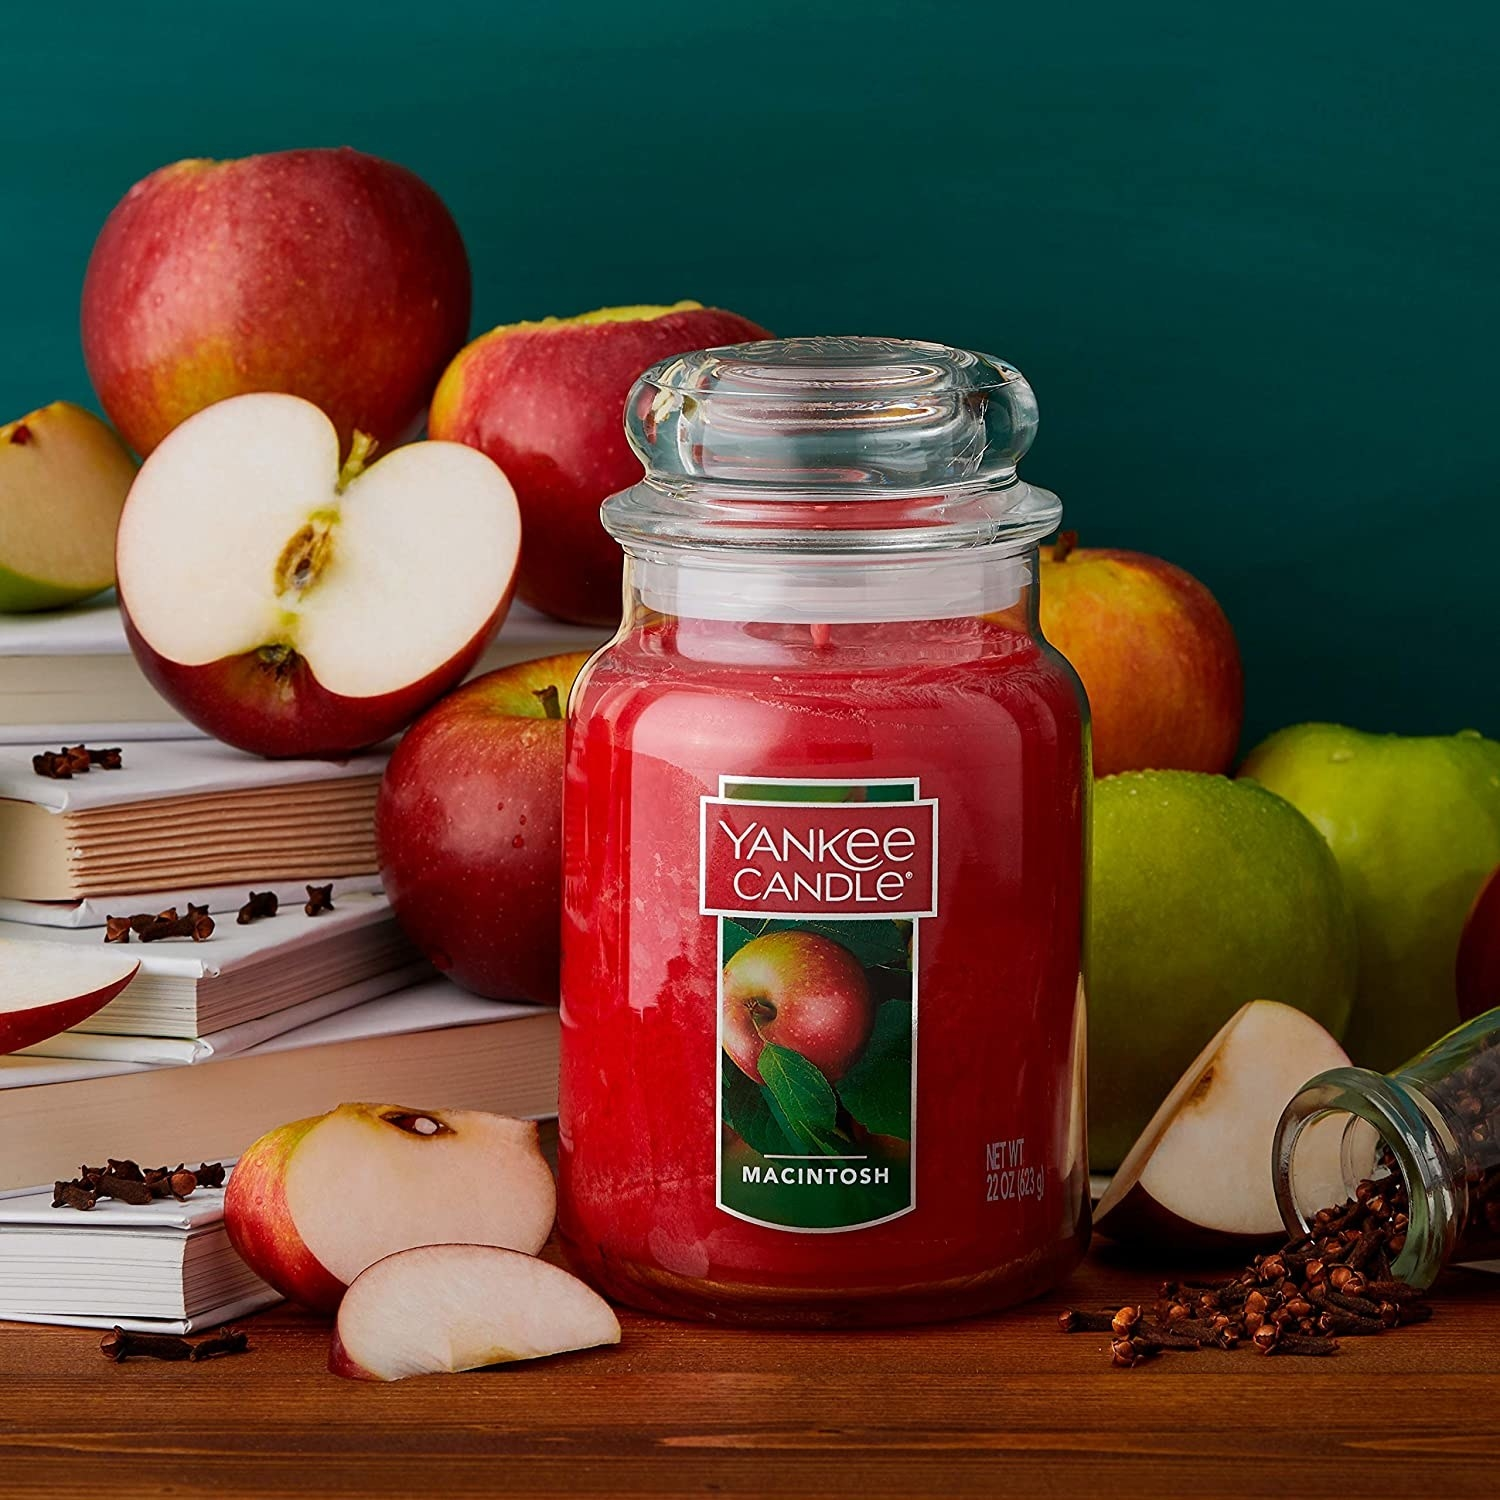 A candle with a lid and a macintosh apple on the front surrounded by applies and spices